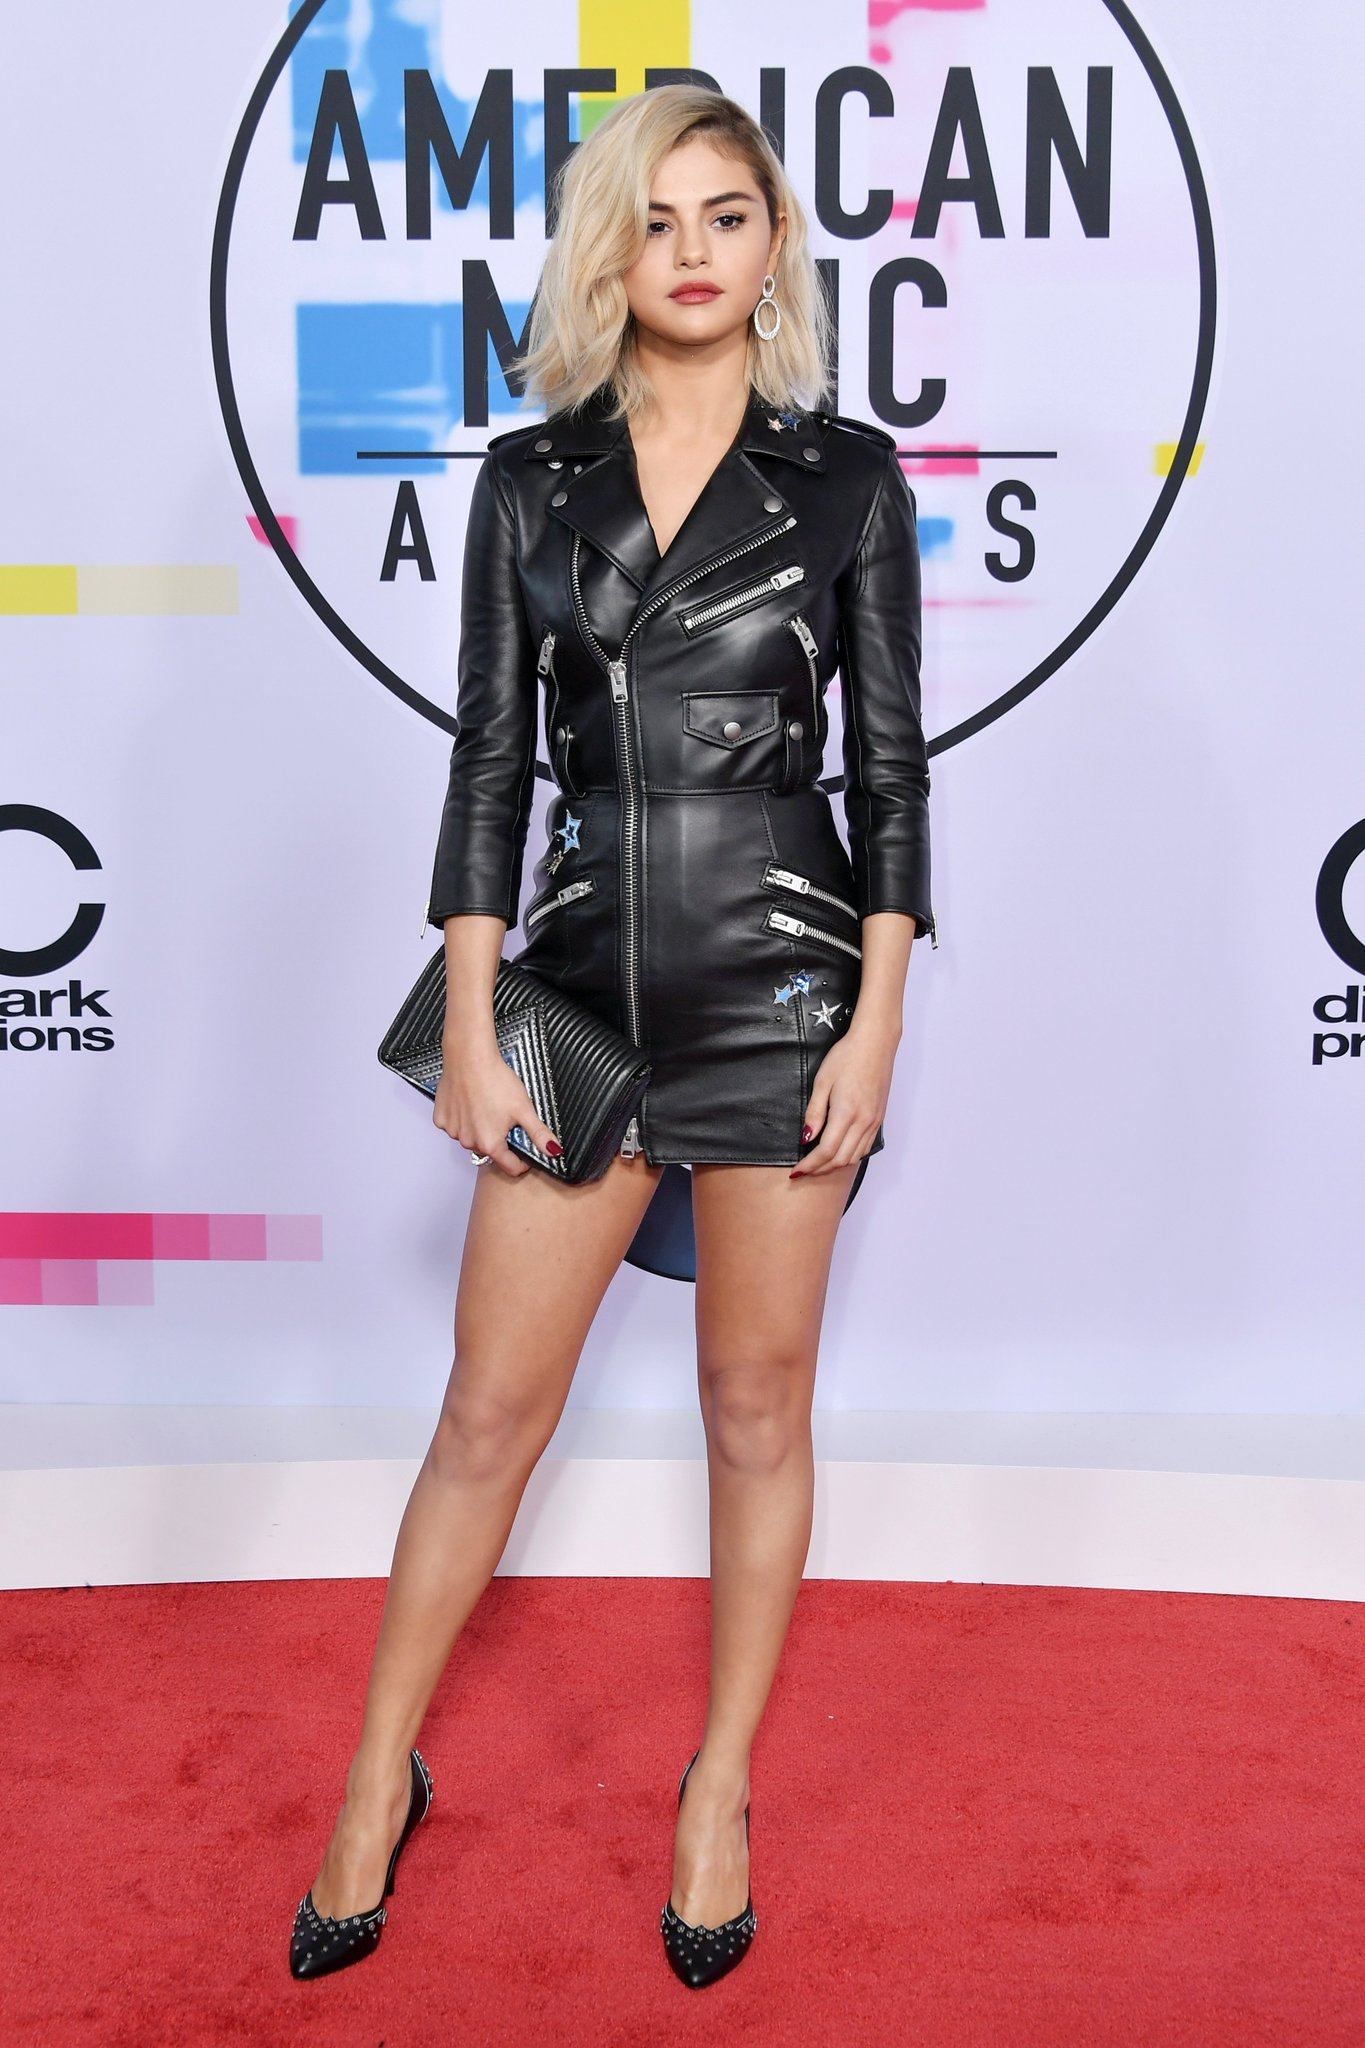 Wow, @SelenaGomez just shut it down on the red carpet -- see more #AMAs fashion right here: https://t.co/Z8UfkEqHQi https://t.co/IySmm1H8pW